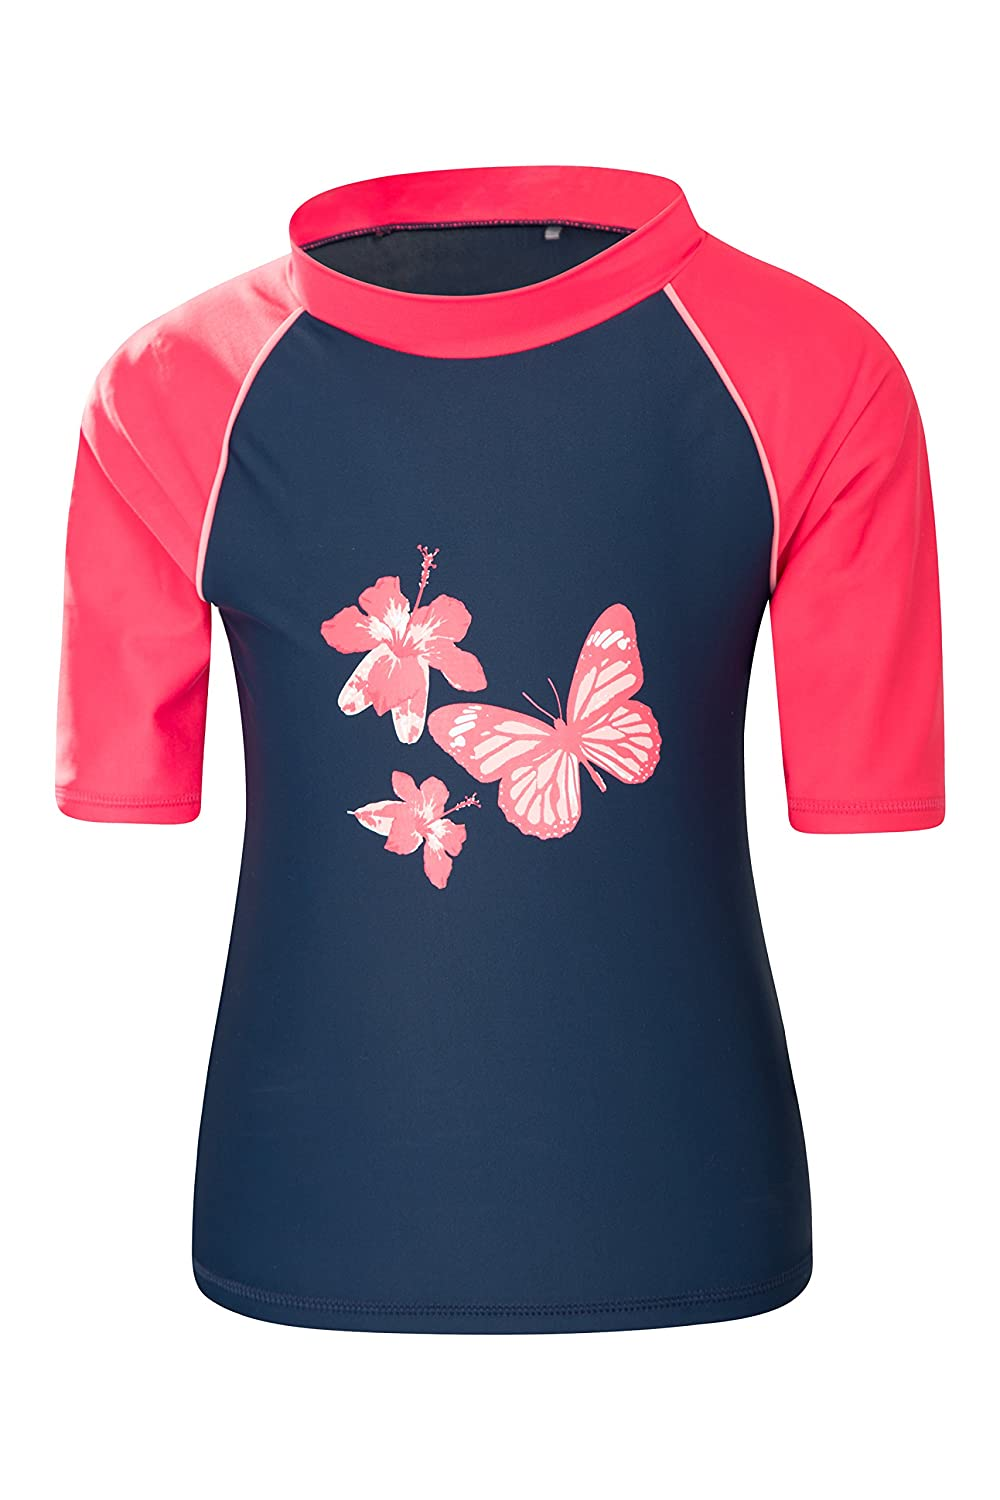 Mountain Warehouse Kids Rash Vest - UPF50+ Sun Protection Rash Guard Pink 13 years 024862040010